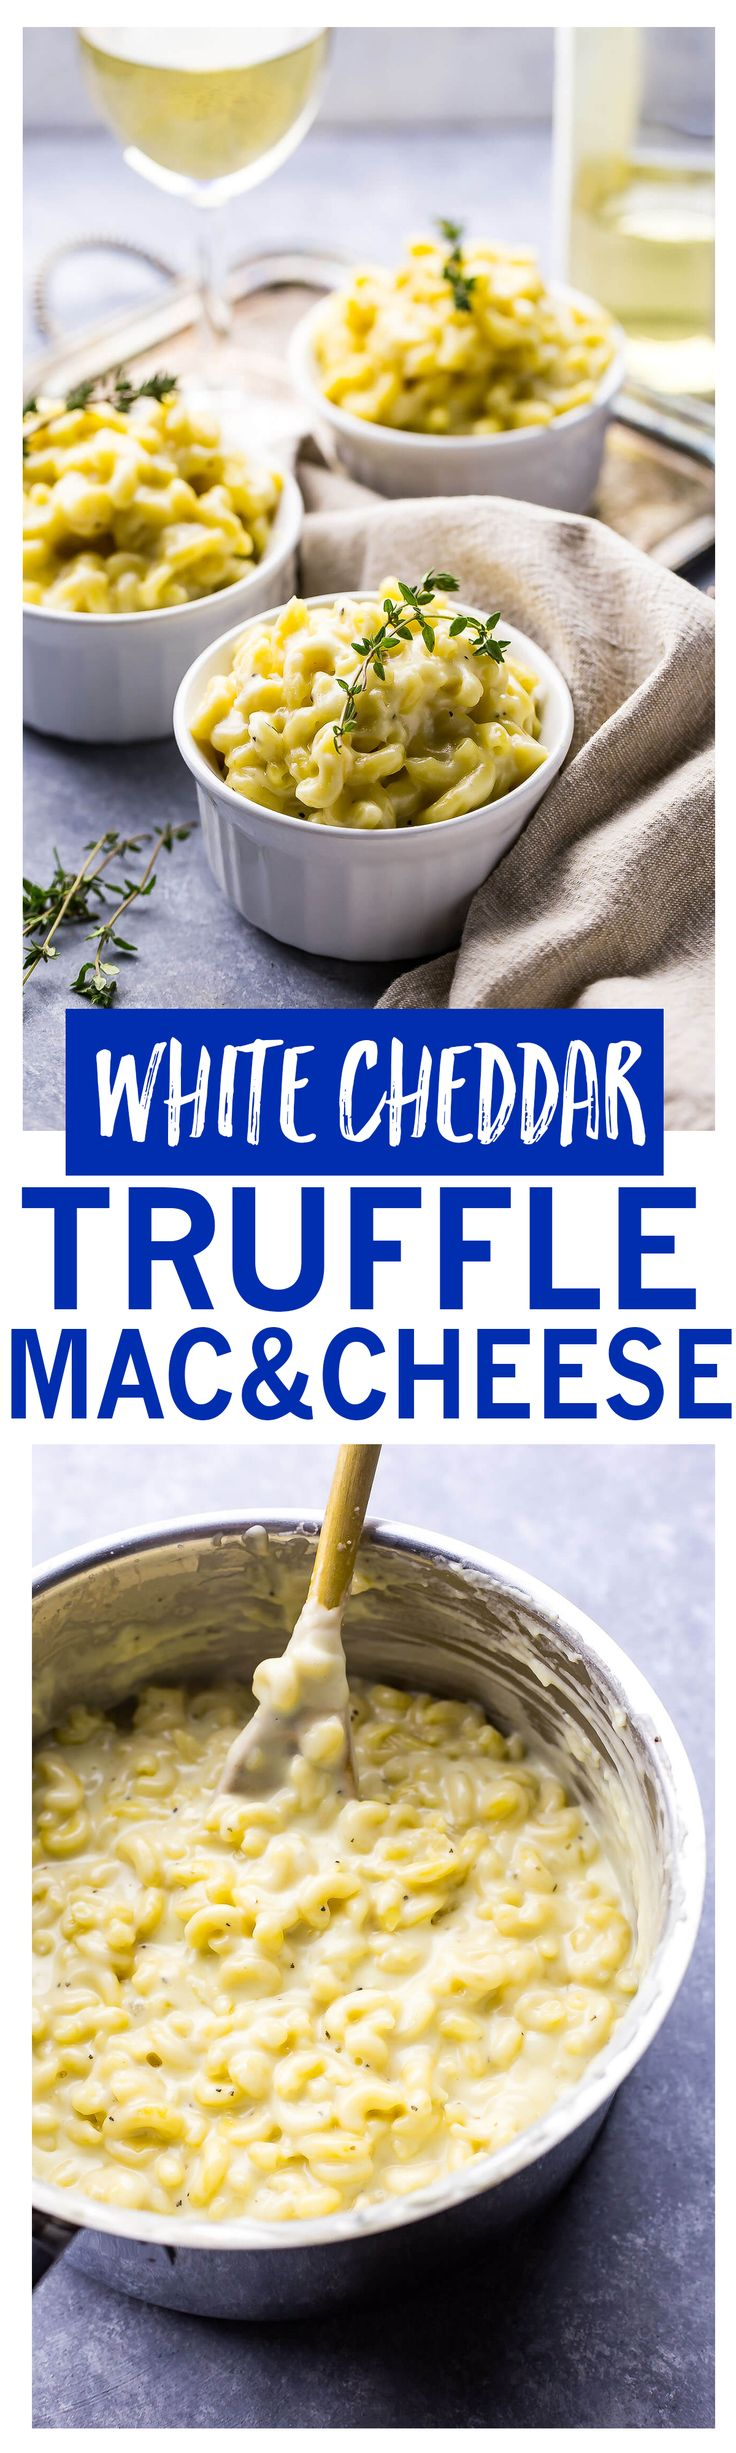 White Cheddar Truffle Mac and Cheese is a delicious and luxurious side dish!